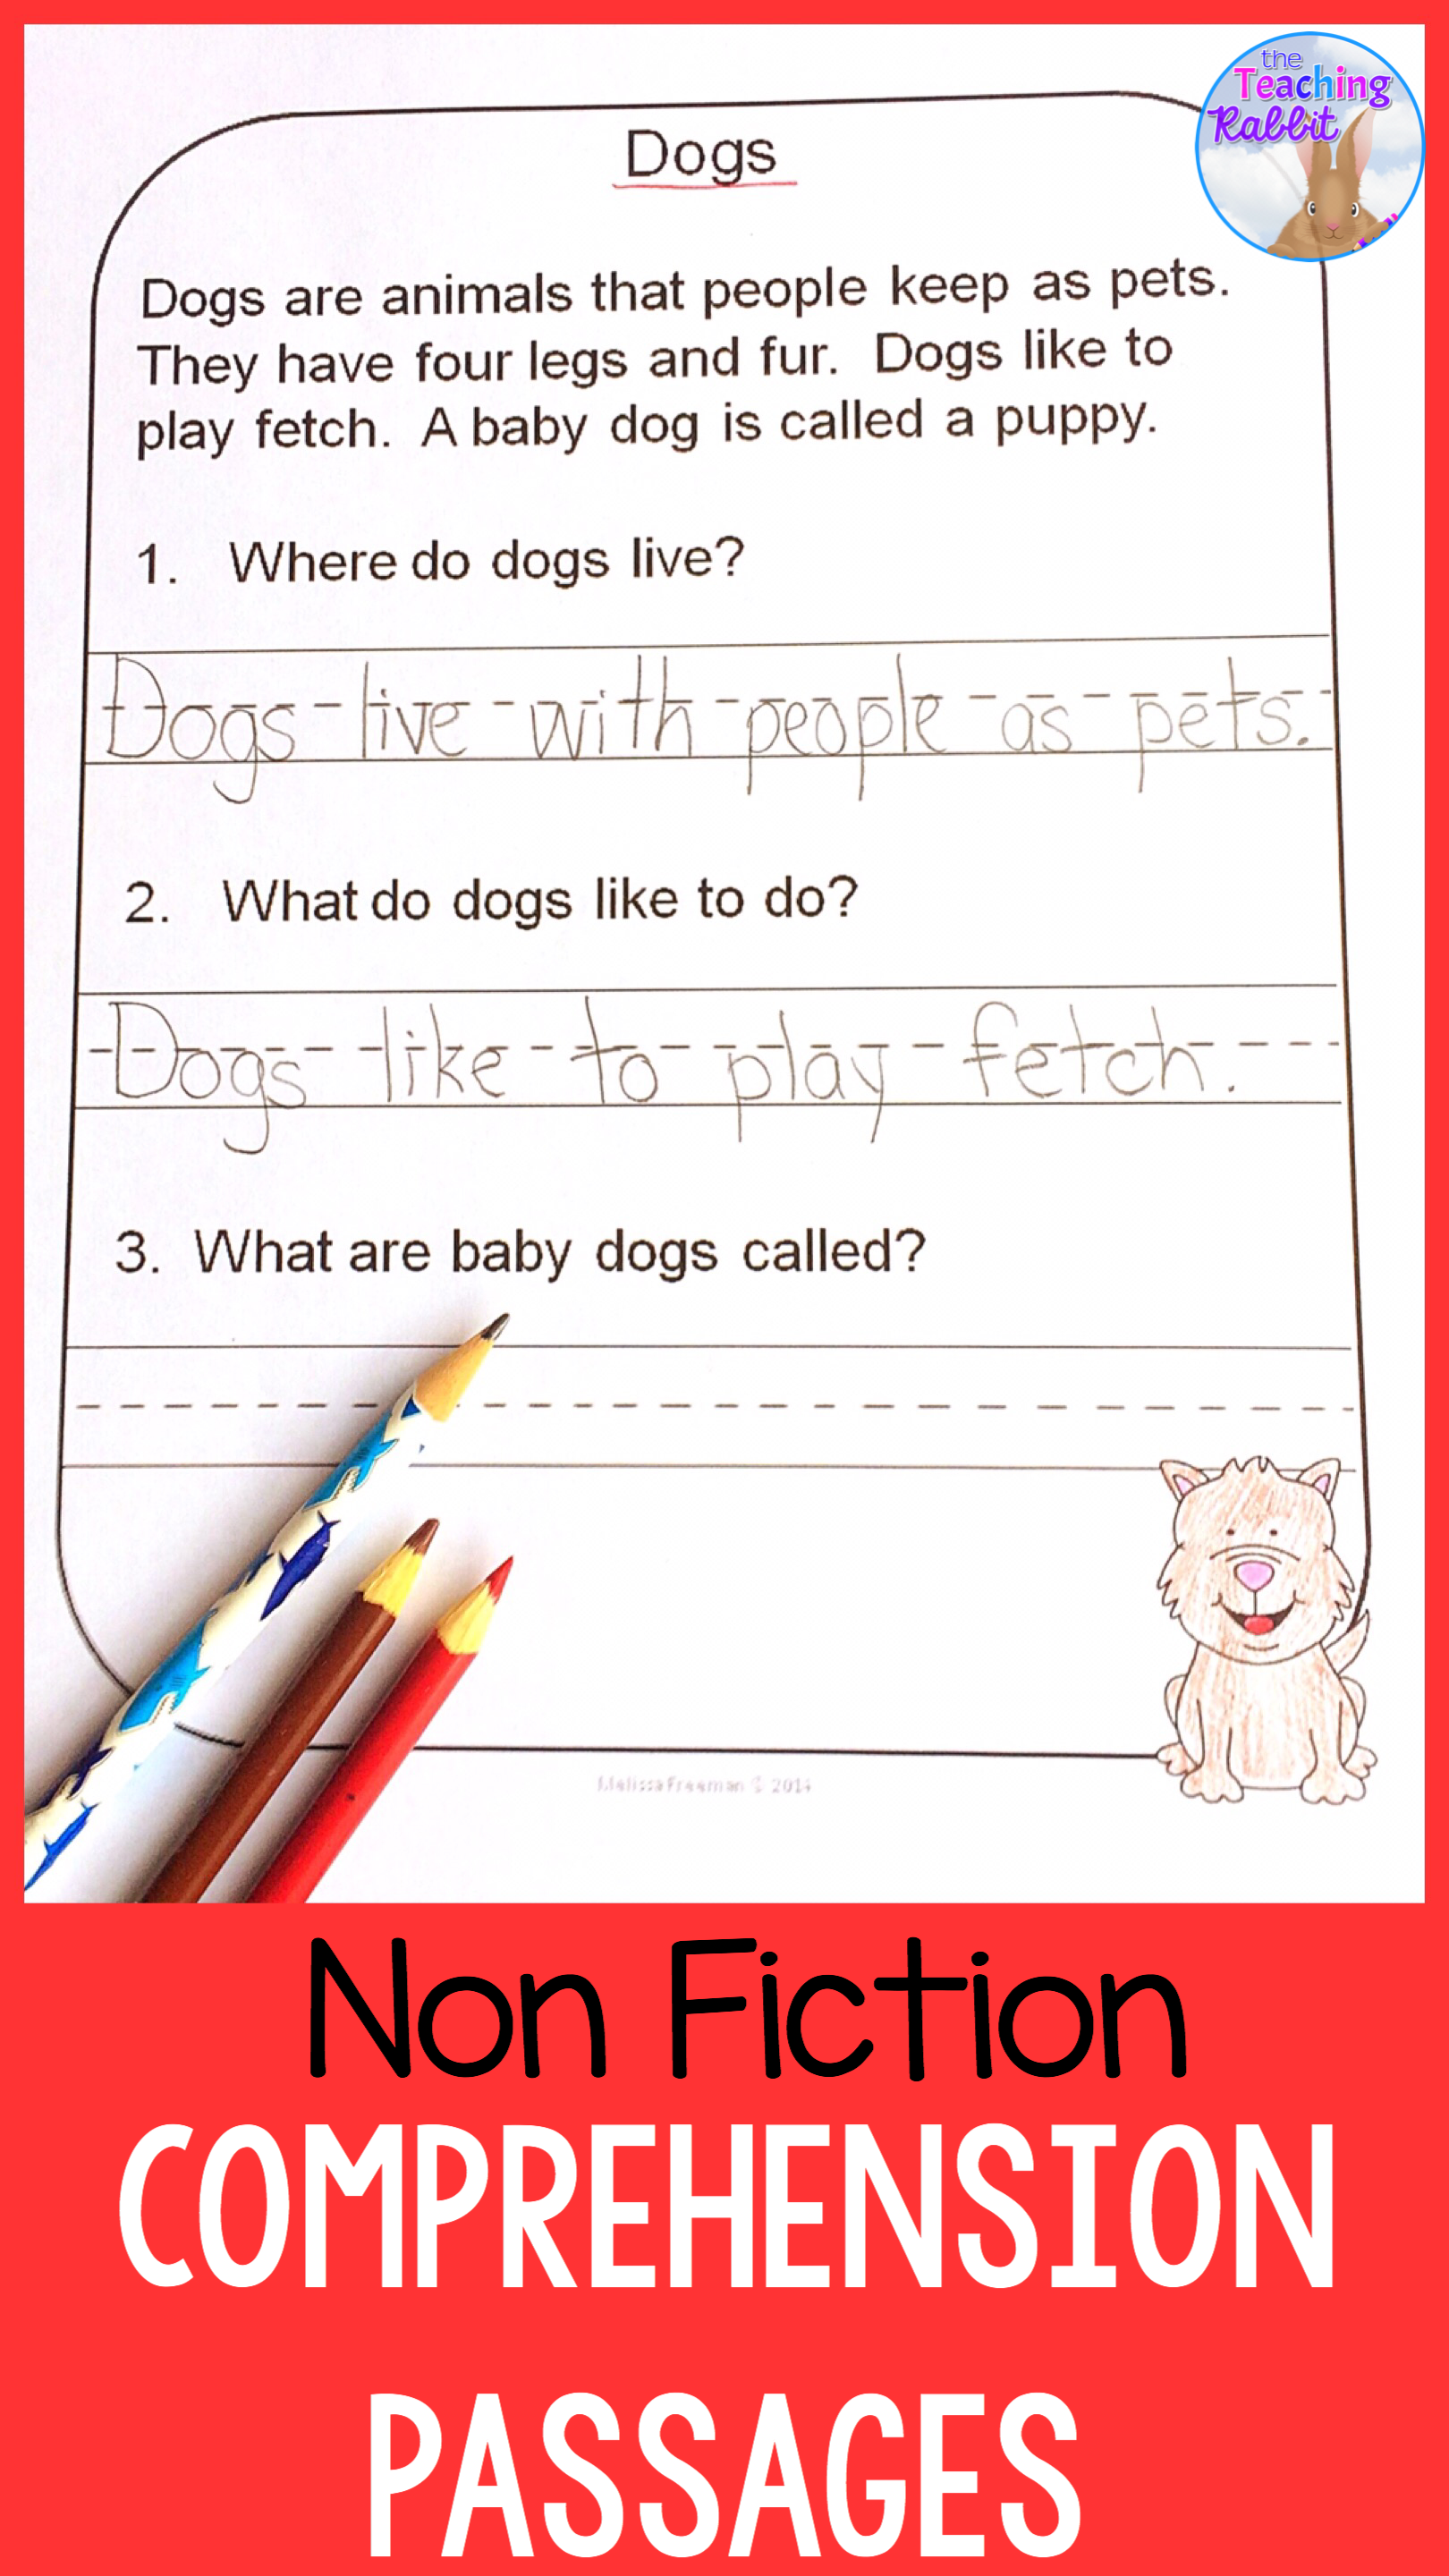 Non Fiction Reading Passages And Questions